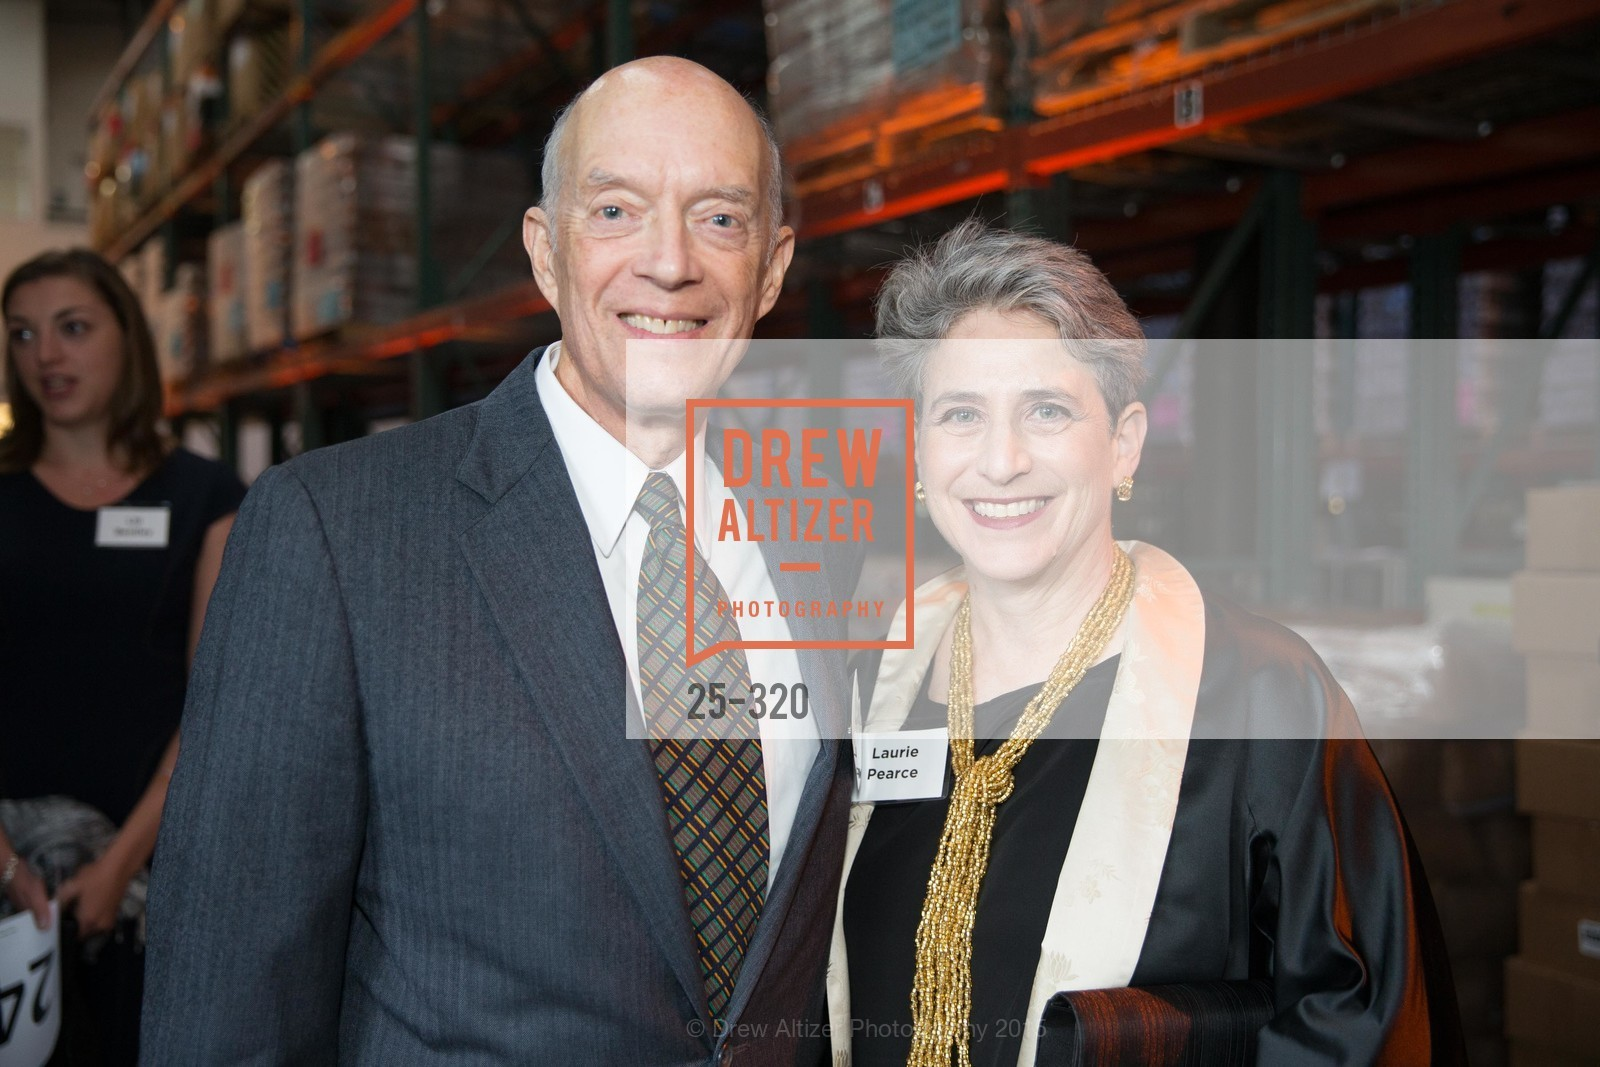 Stephen Pearce, Laurie Pearce, SF - Marin Food Bank Presents ONE BIG TABLE, SF- Marin Food Bank. 900 Pennsylvania Ave, September 26th, 2015,Drew Altizer, Drew Altizer Photography, full-service agency, private events, San Francisco photographer, photographer california